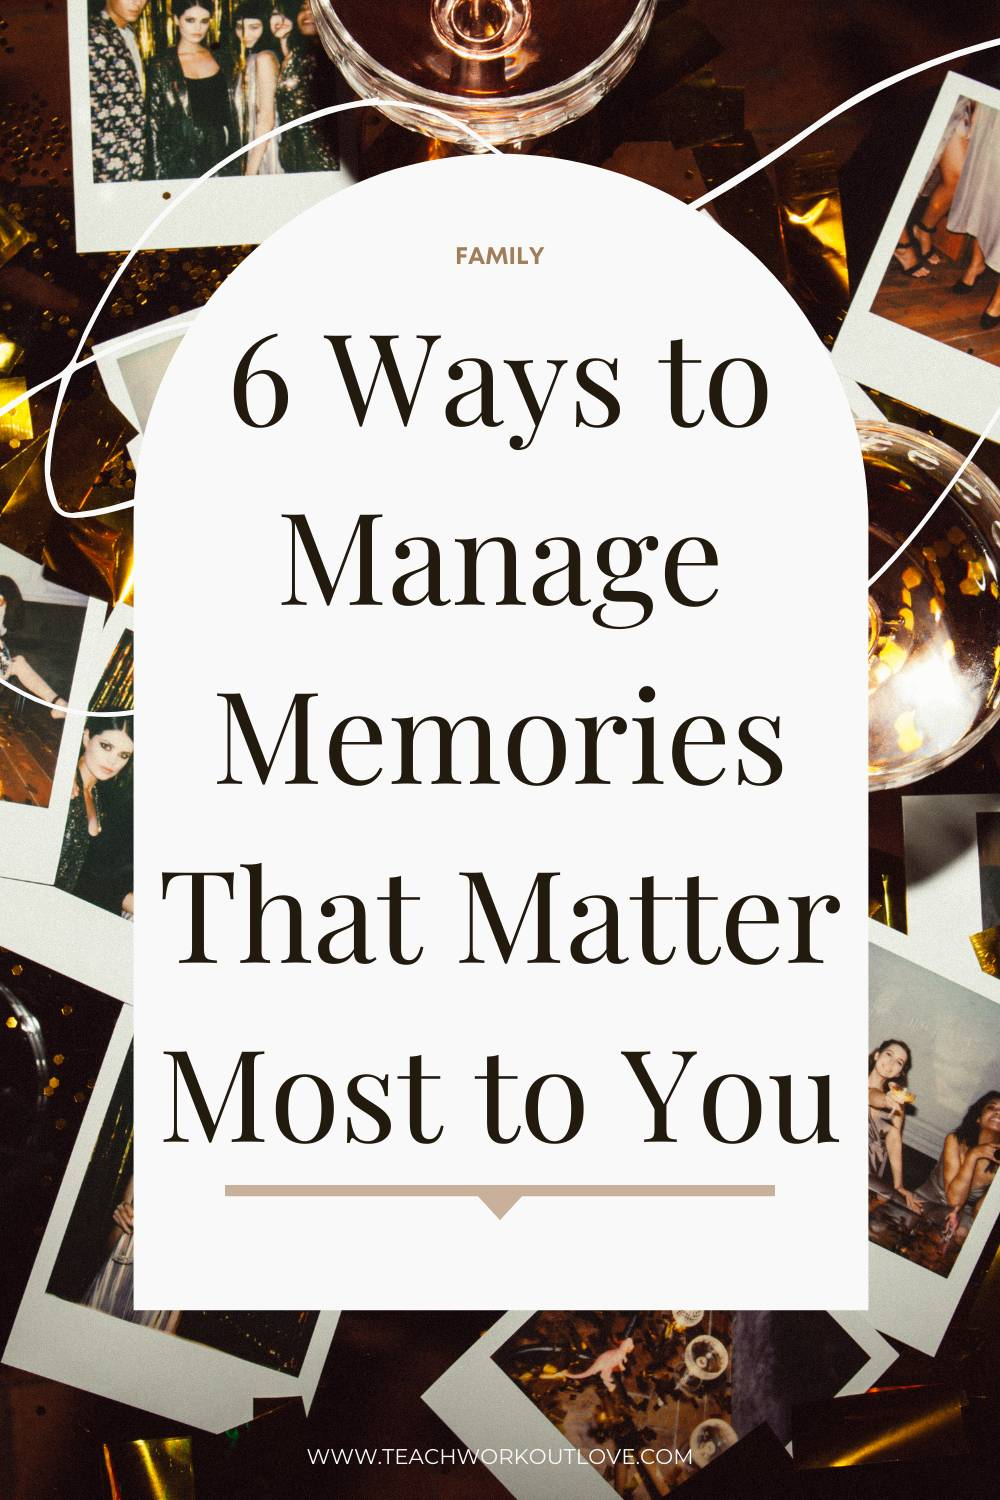 Want to know the best ways to remember a loved one? We have 6 ways to help you manage your memories and keep loved ones close.